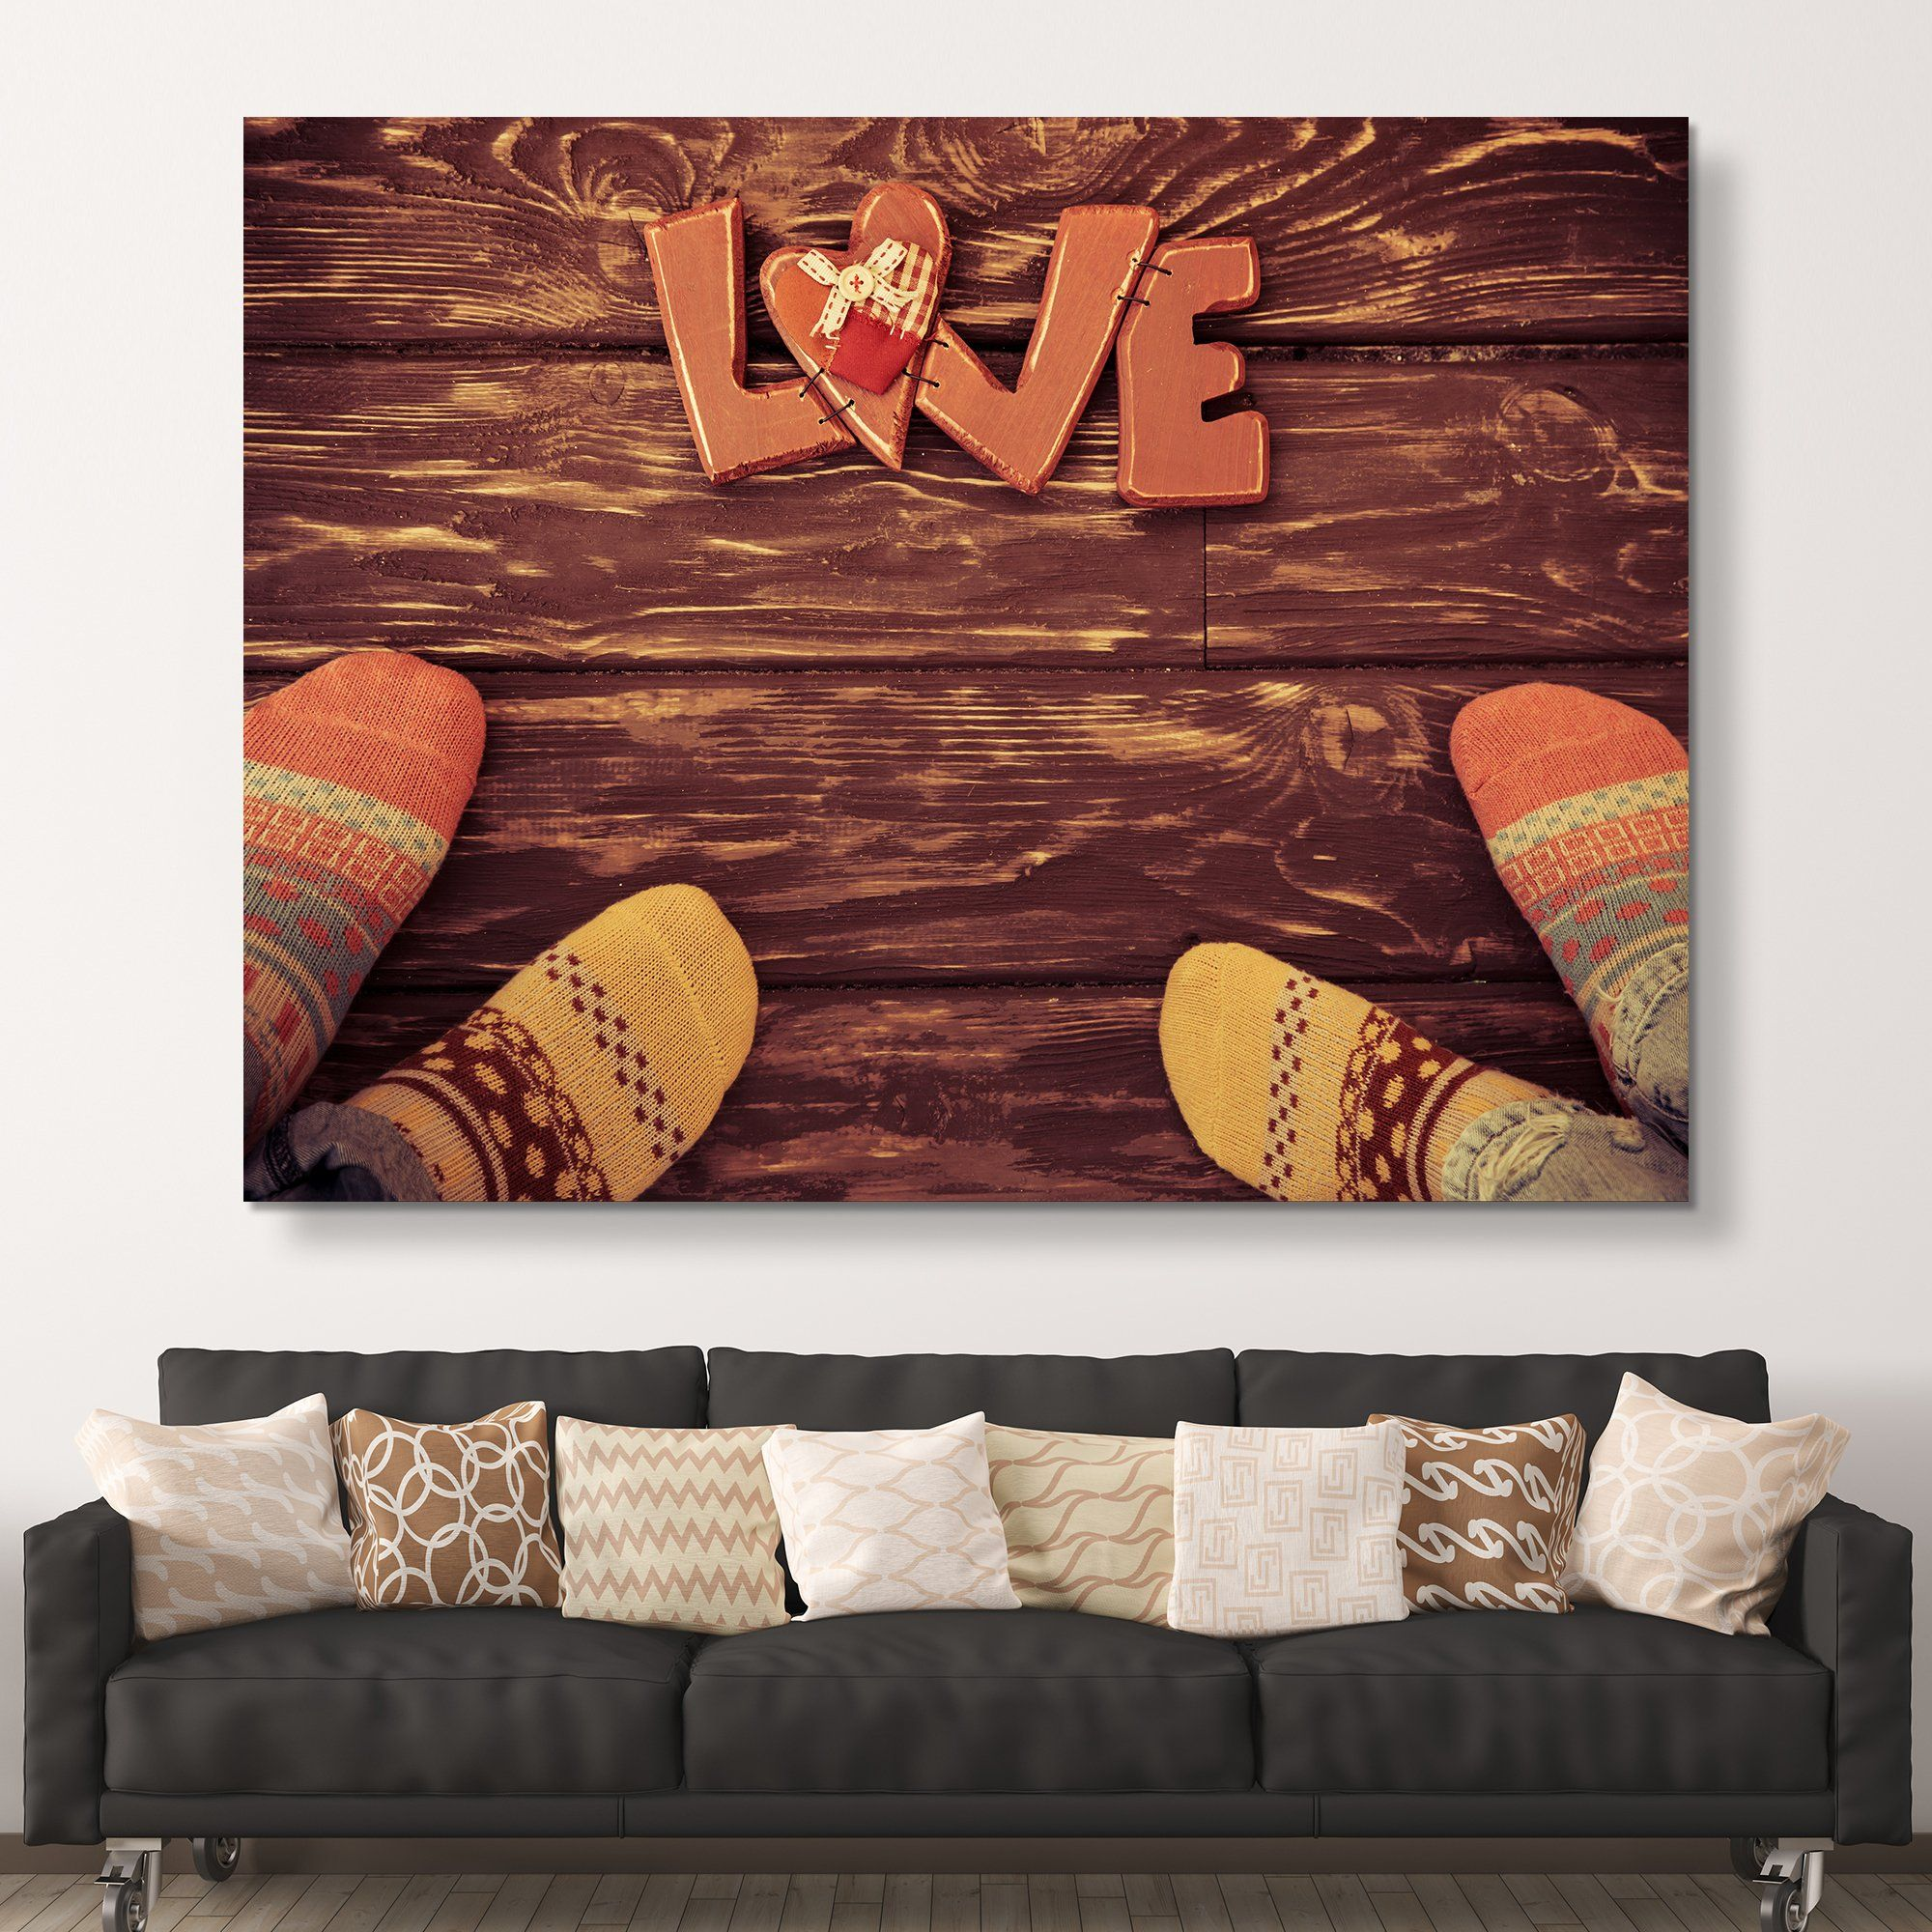 Socks for Love wall art